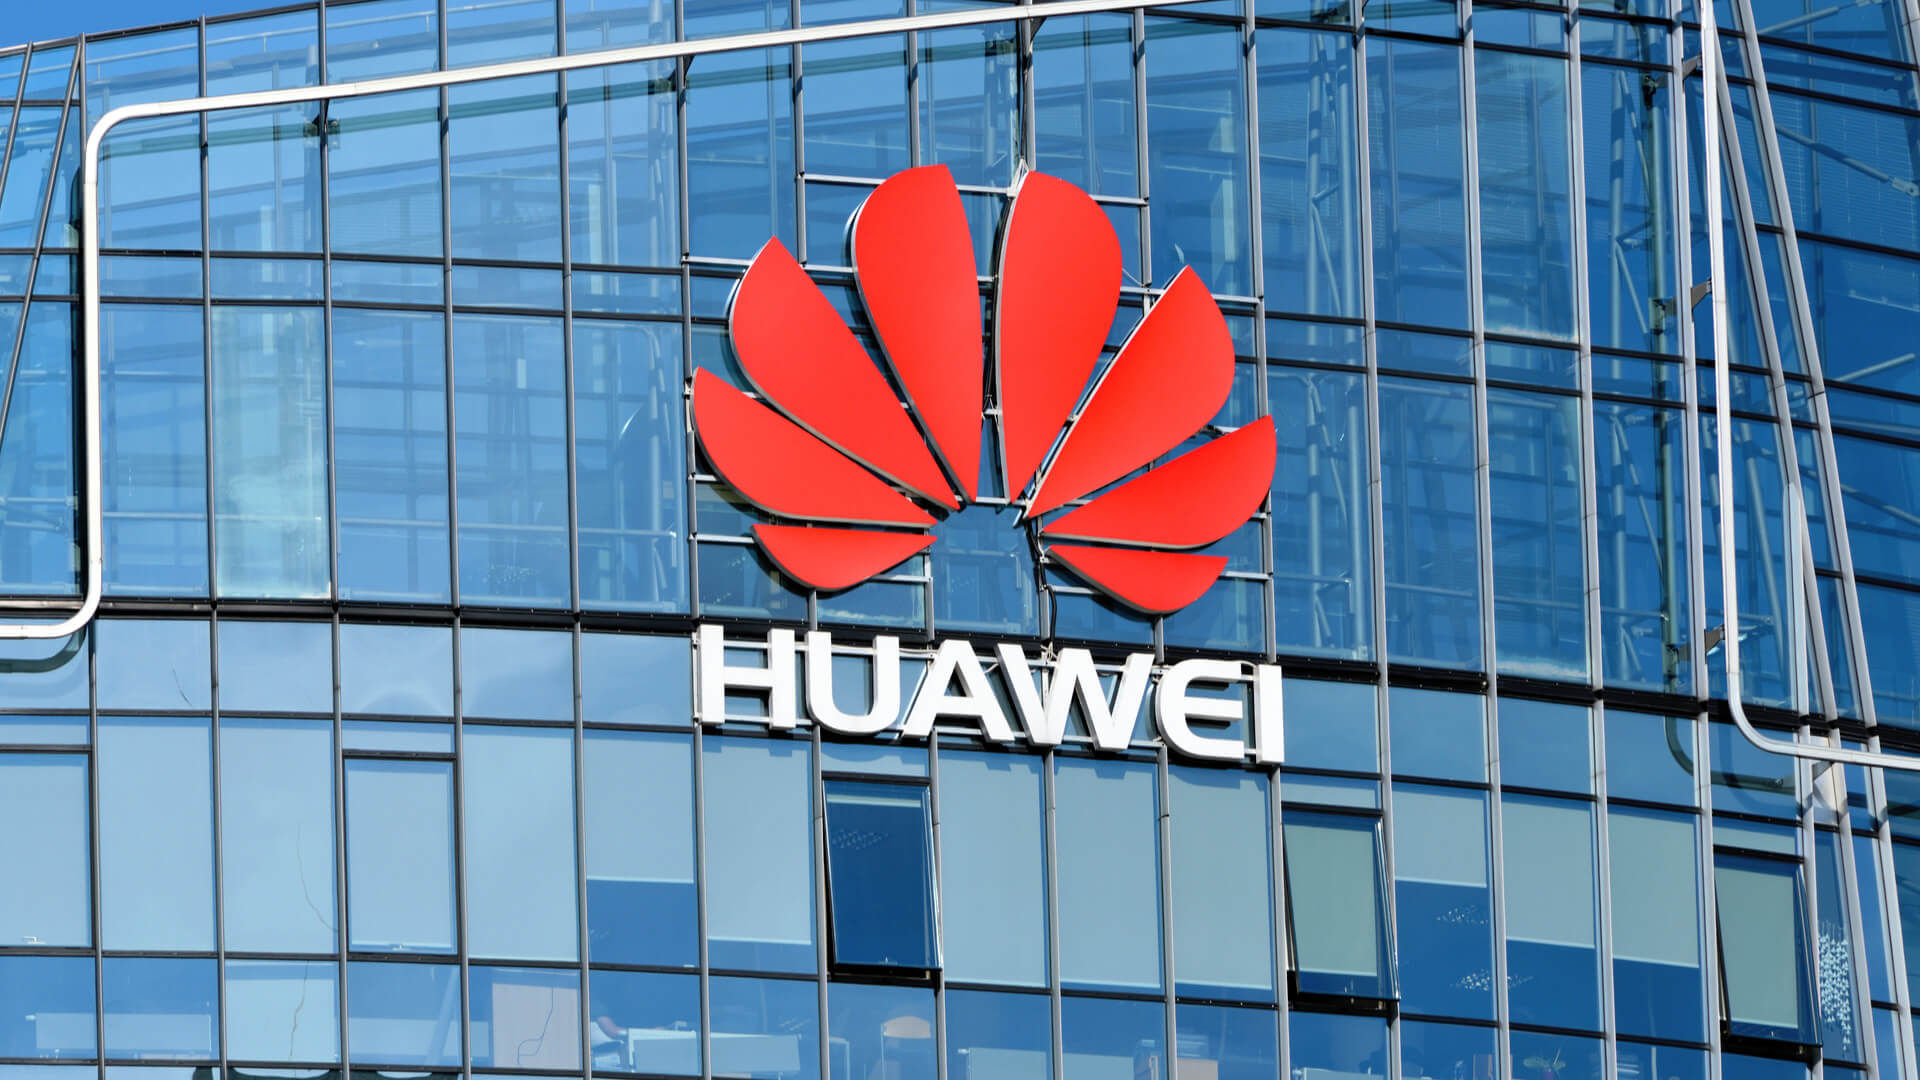 Briefing: Machine learning community raises concerns about IEEE's Huawei ban